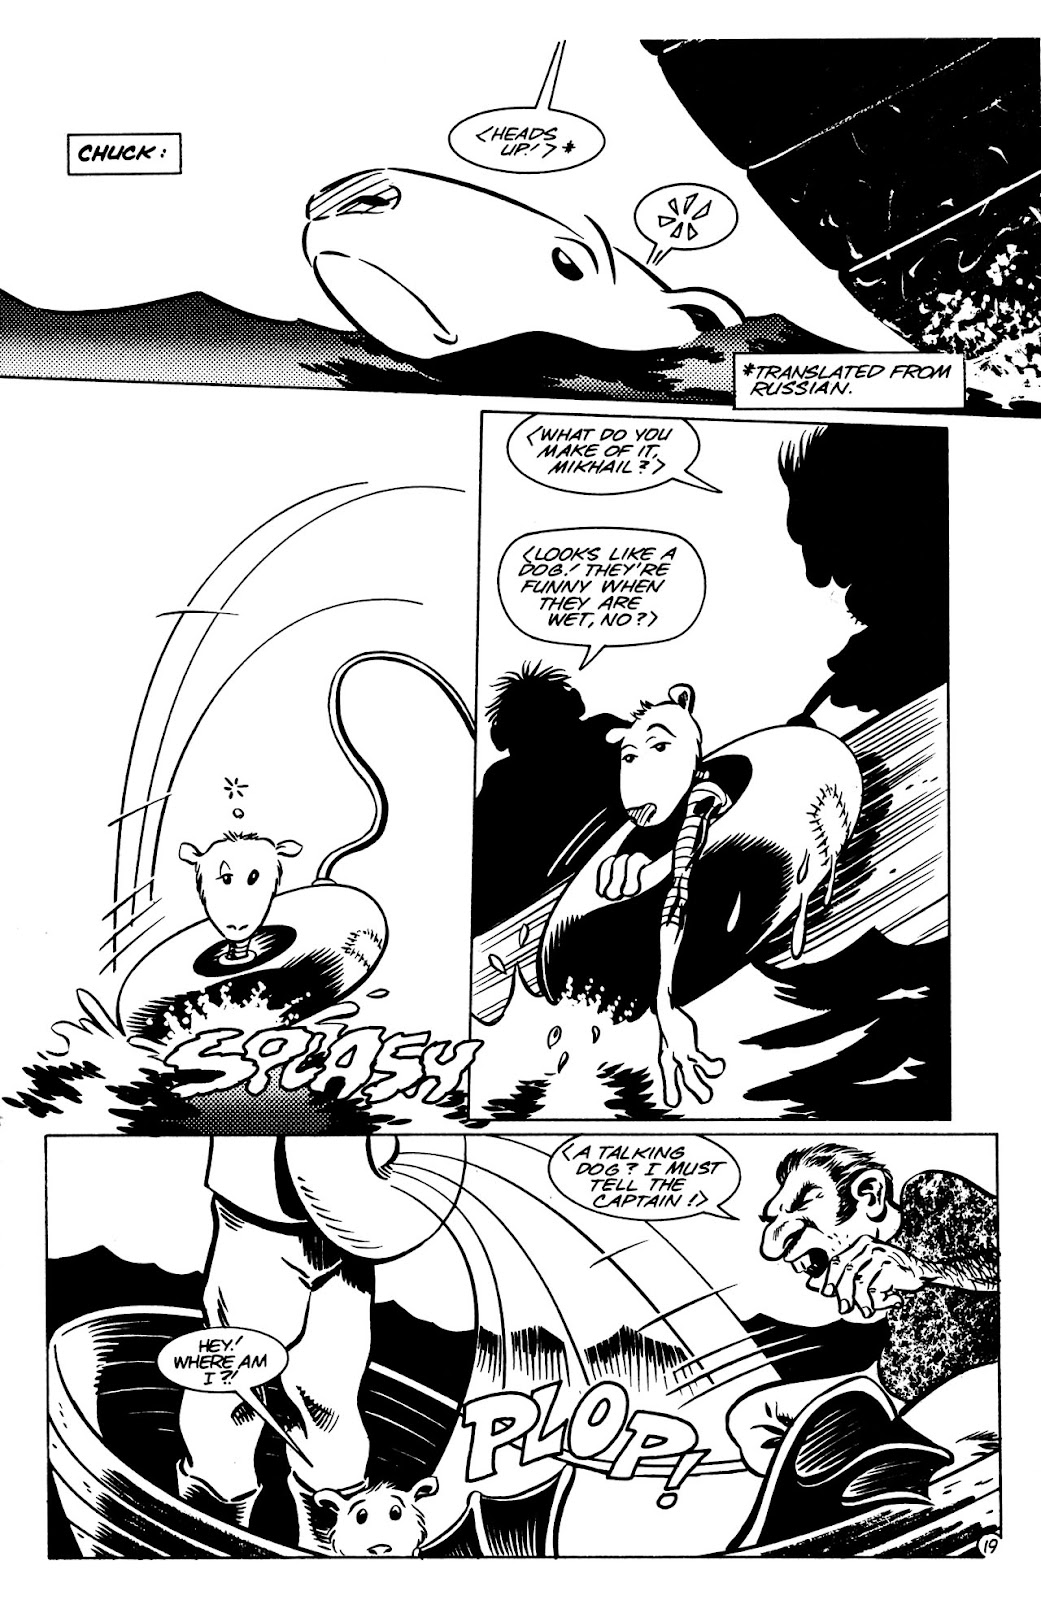 Adolescent Radioactive Black Belt Hamsters (1986) issue 8 - Page 20